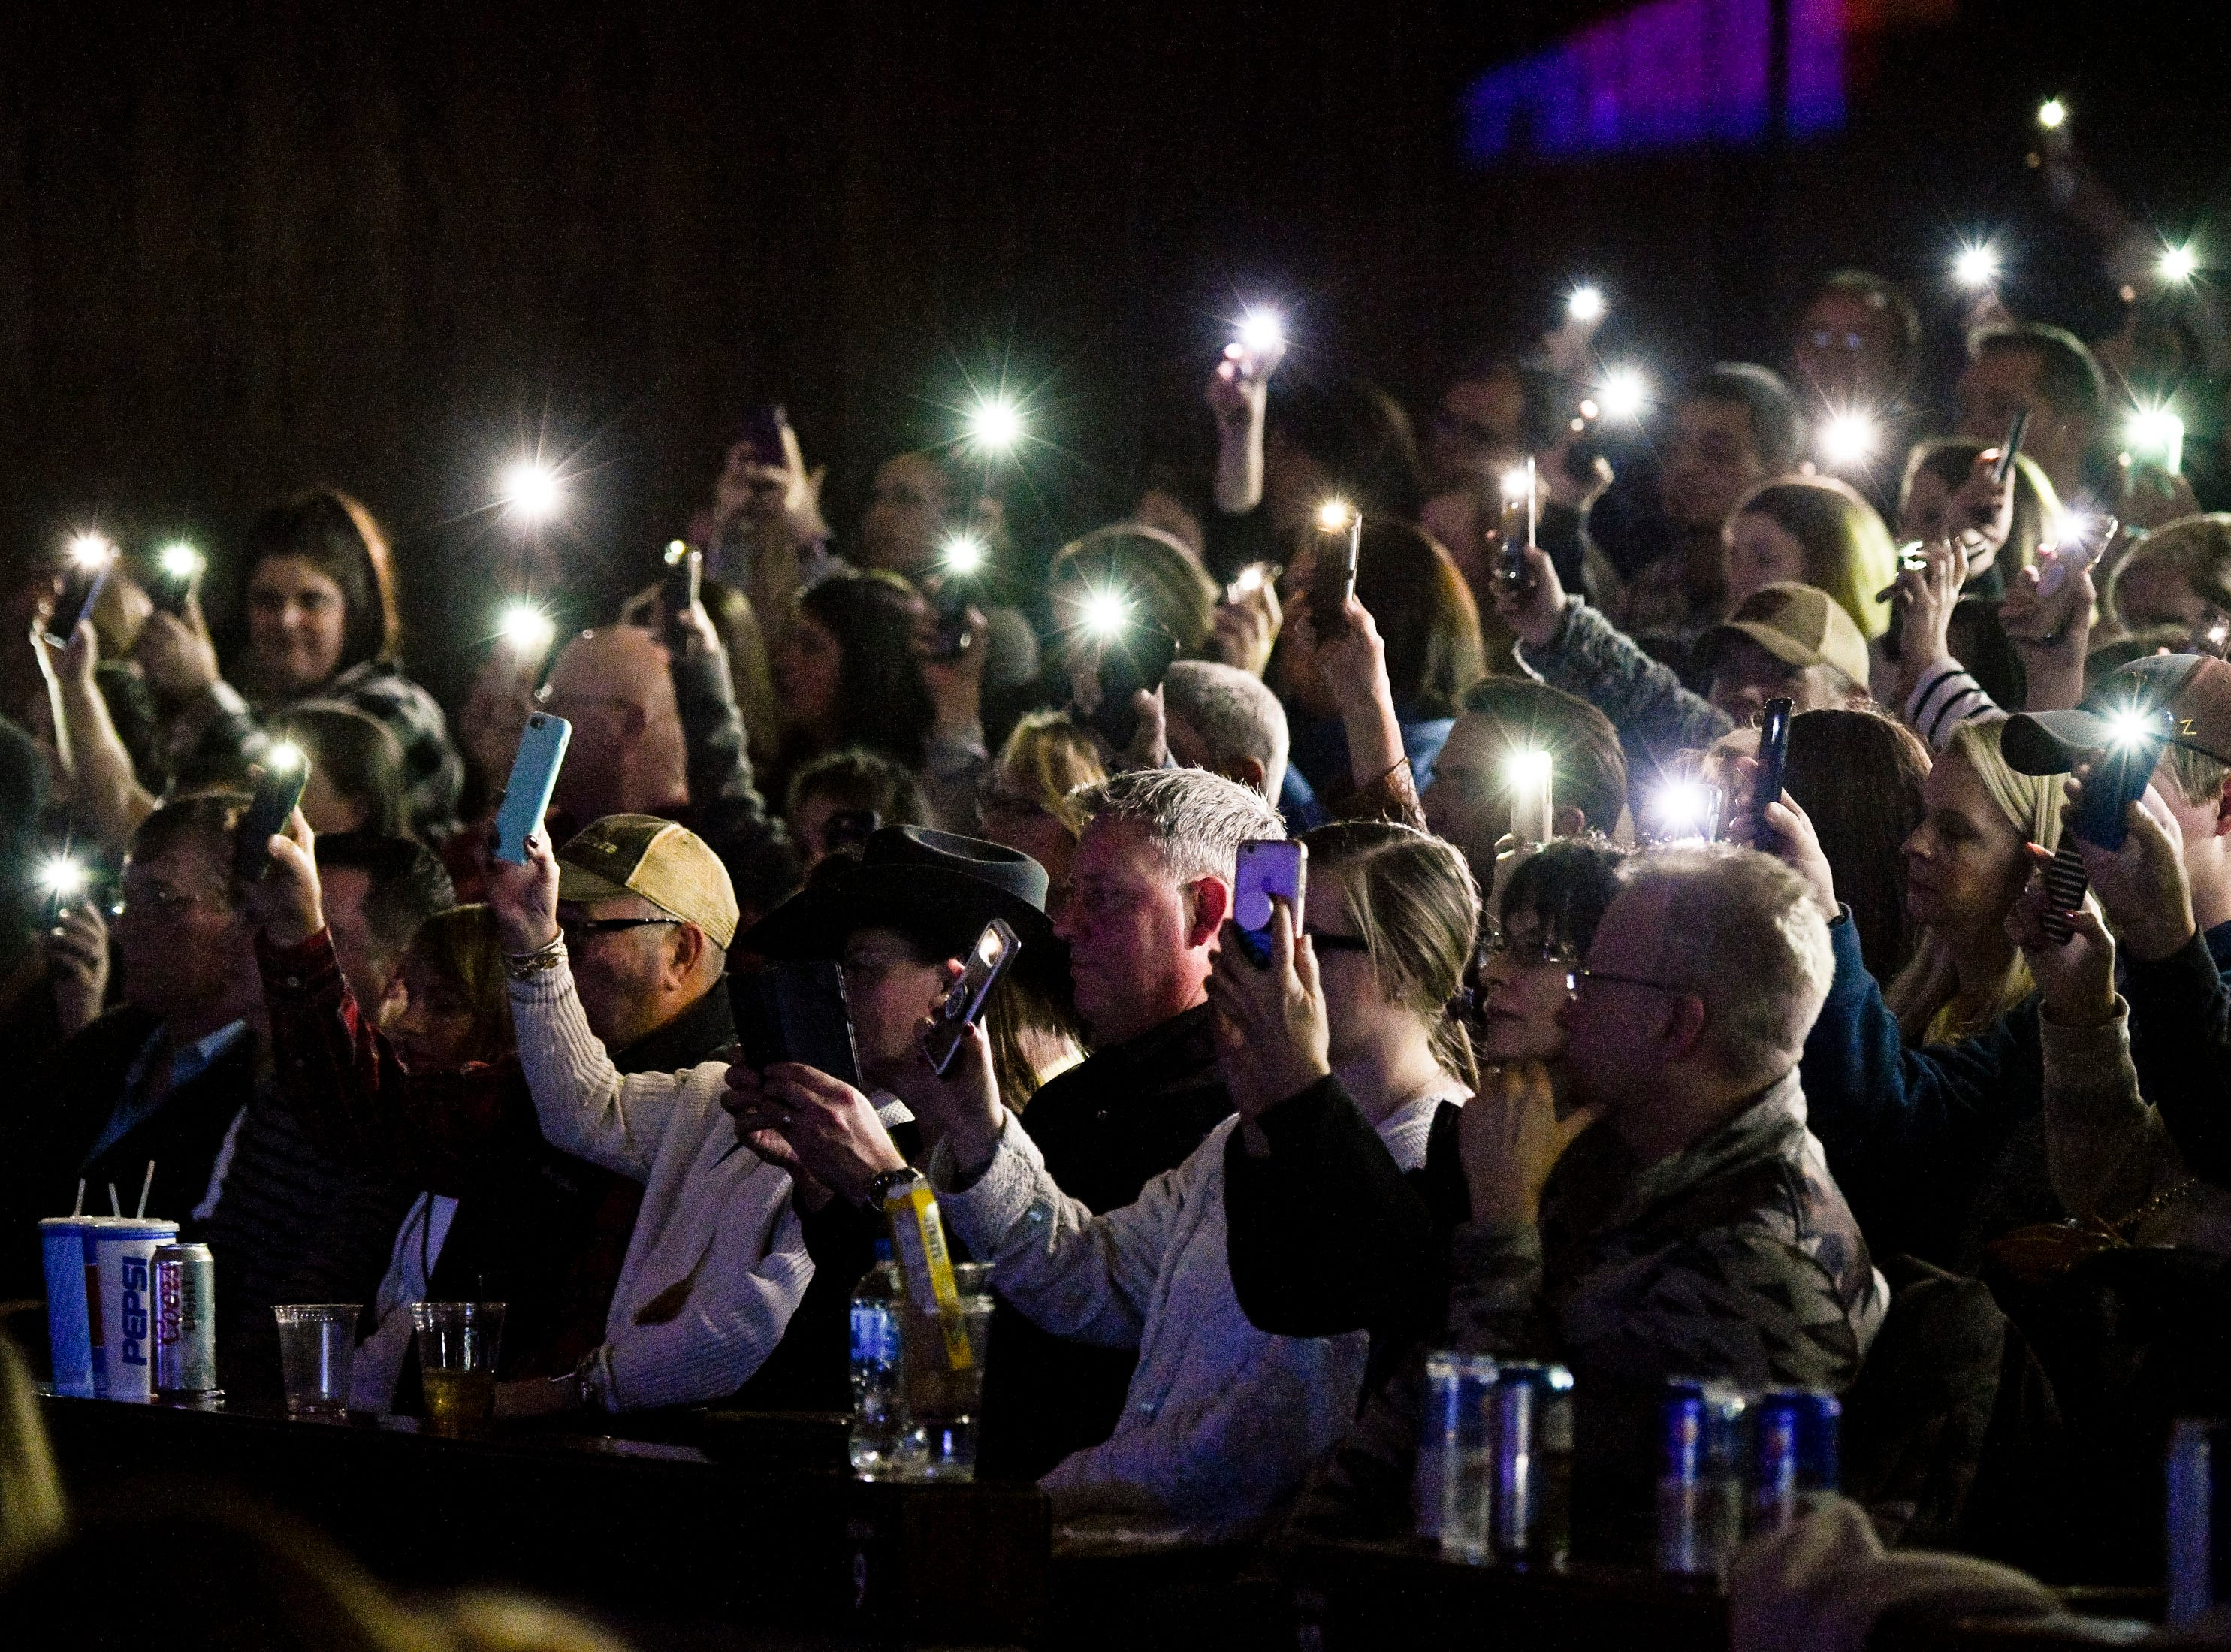 Fans hold up their phones during the C'Ya On The Flipside Benefit Concert at the Grand Ole Opry House in Nashville, Tenn., Wednesday, Jan. 9, 2019.